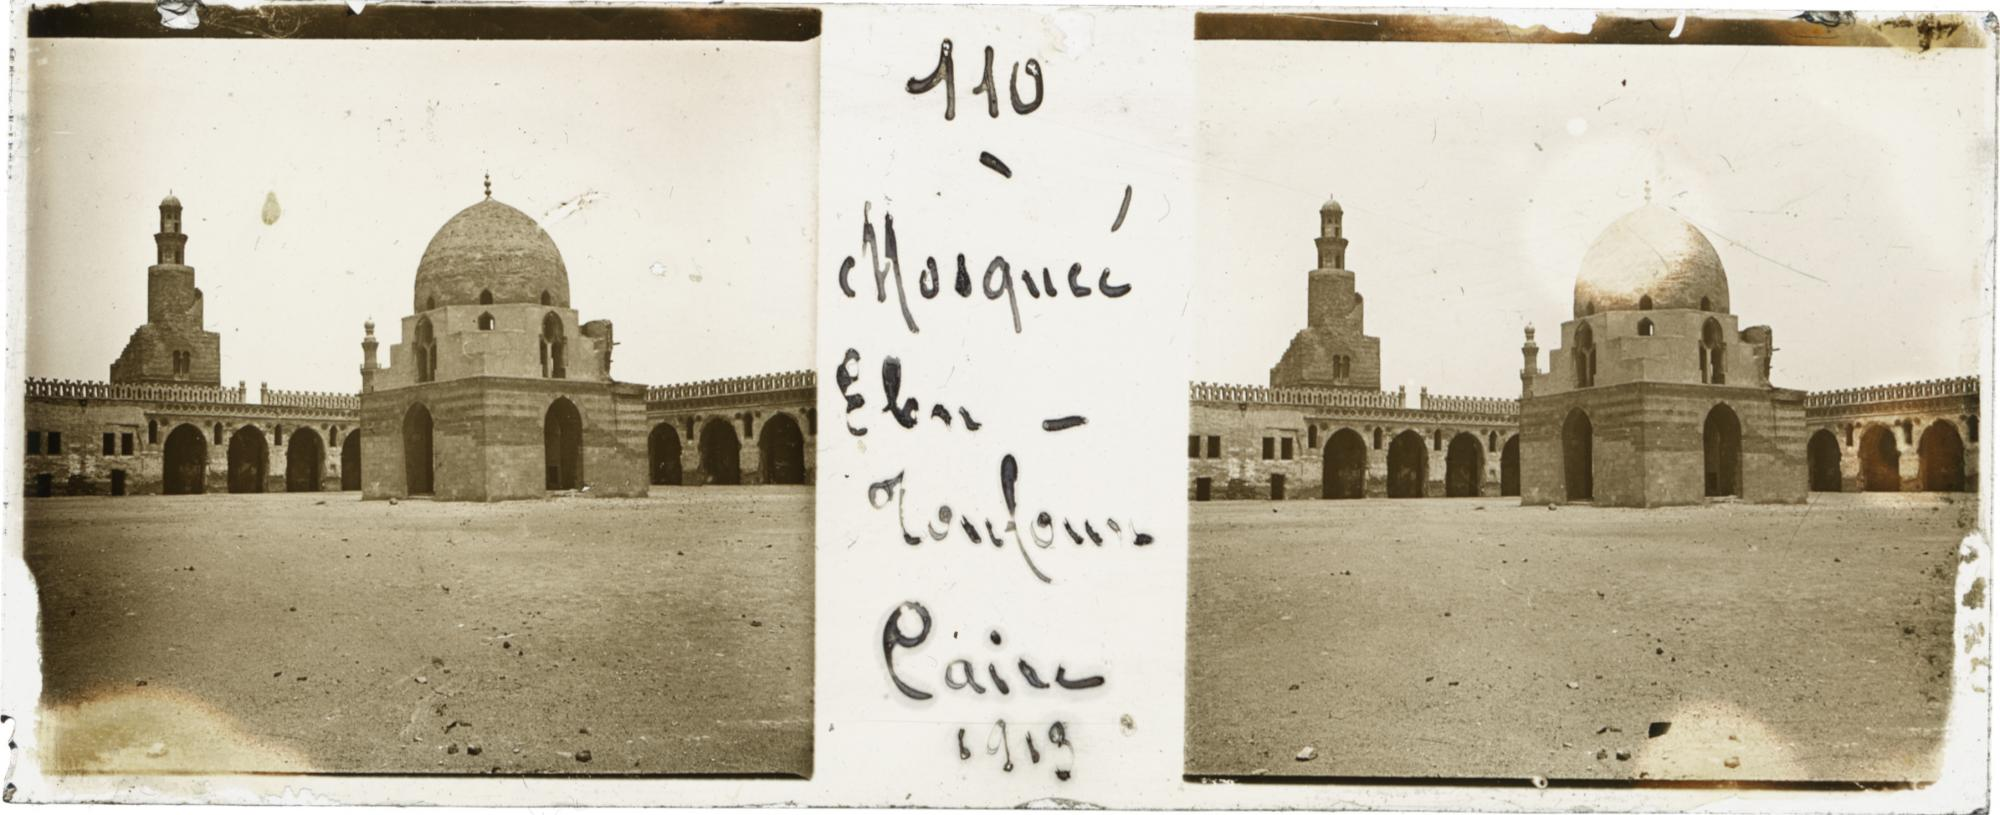 Mosque of Ebn-Touloun : Cairo, 1919, from Taxiphote digitization project.. Photo courtesy of Rare Books and Special Collections Library.